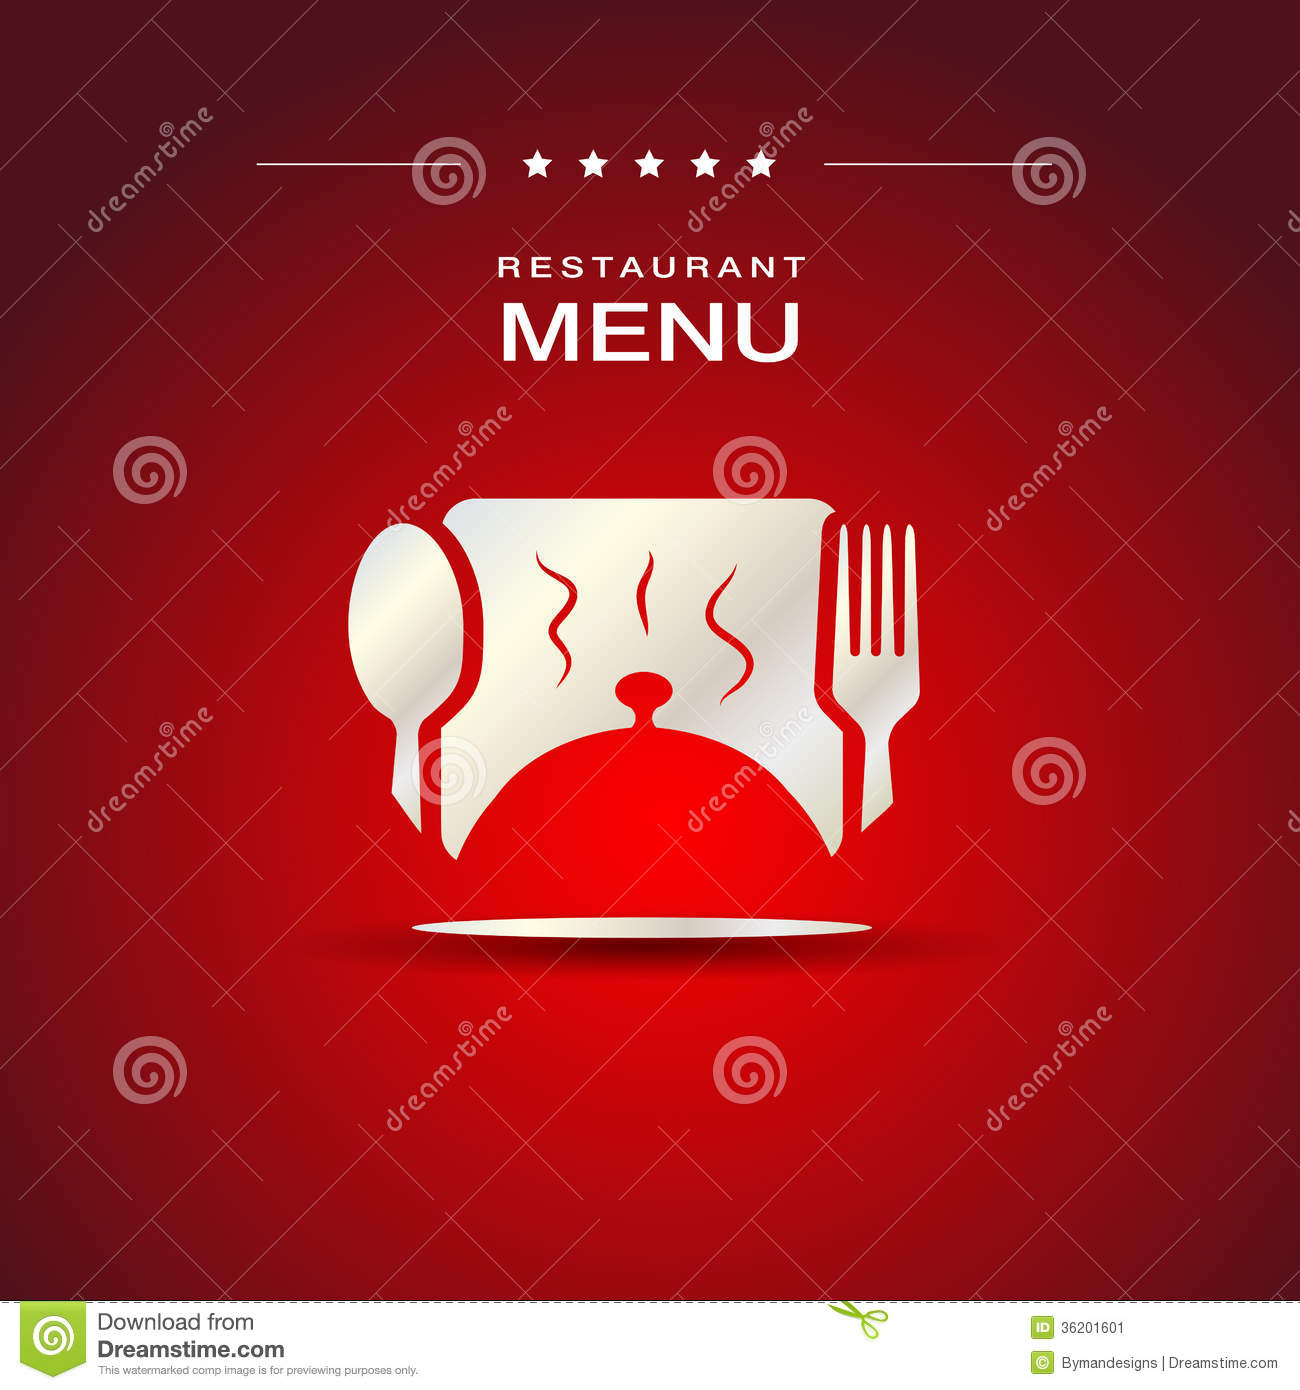 restaurant menu cover design stock vector - illustration of